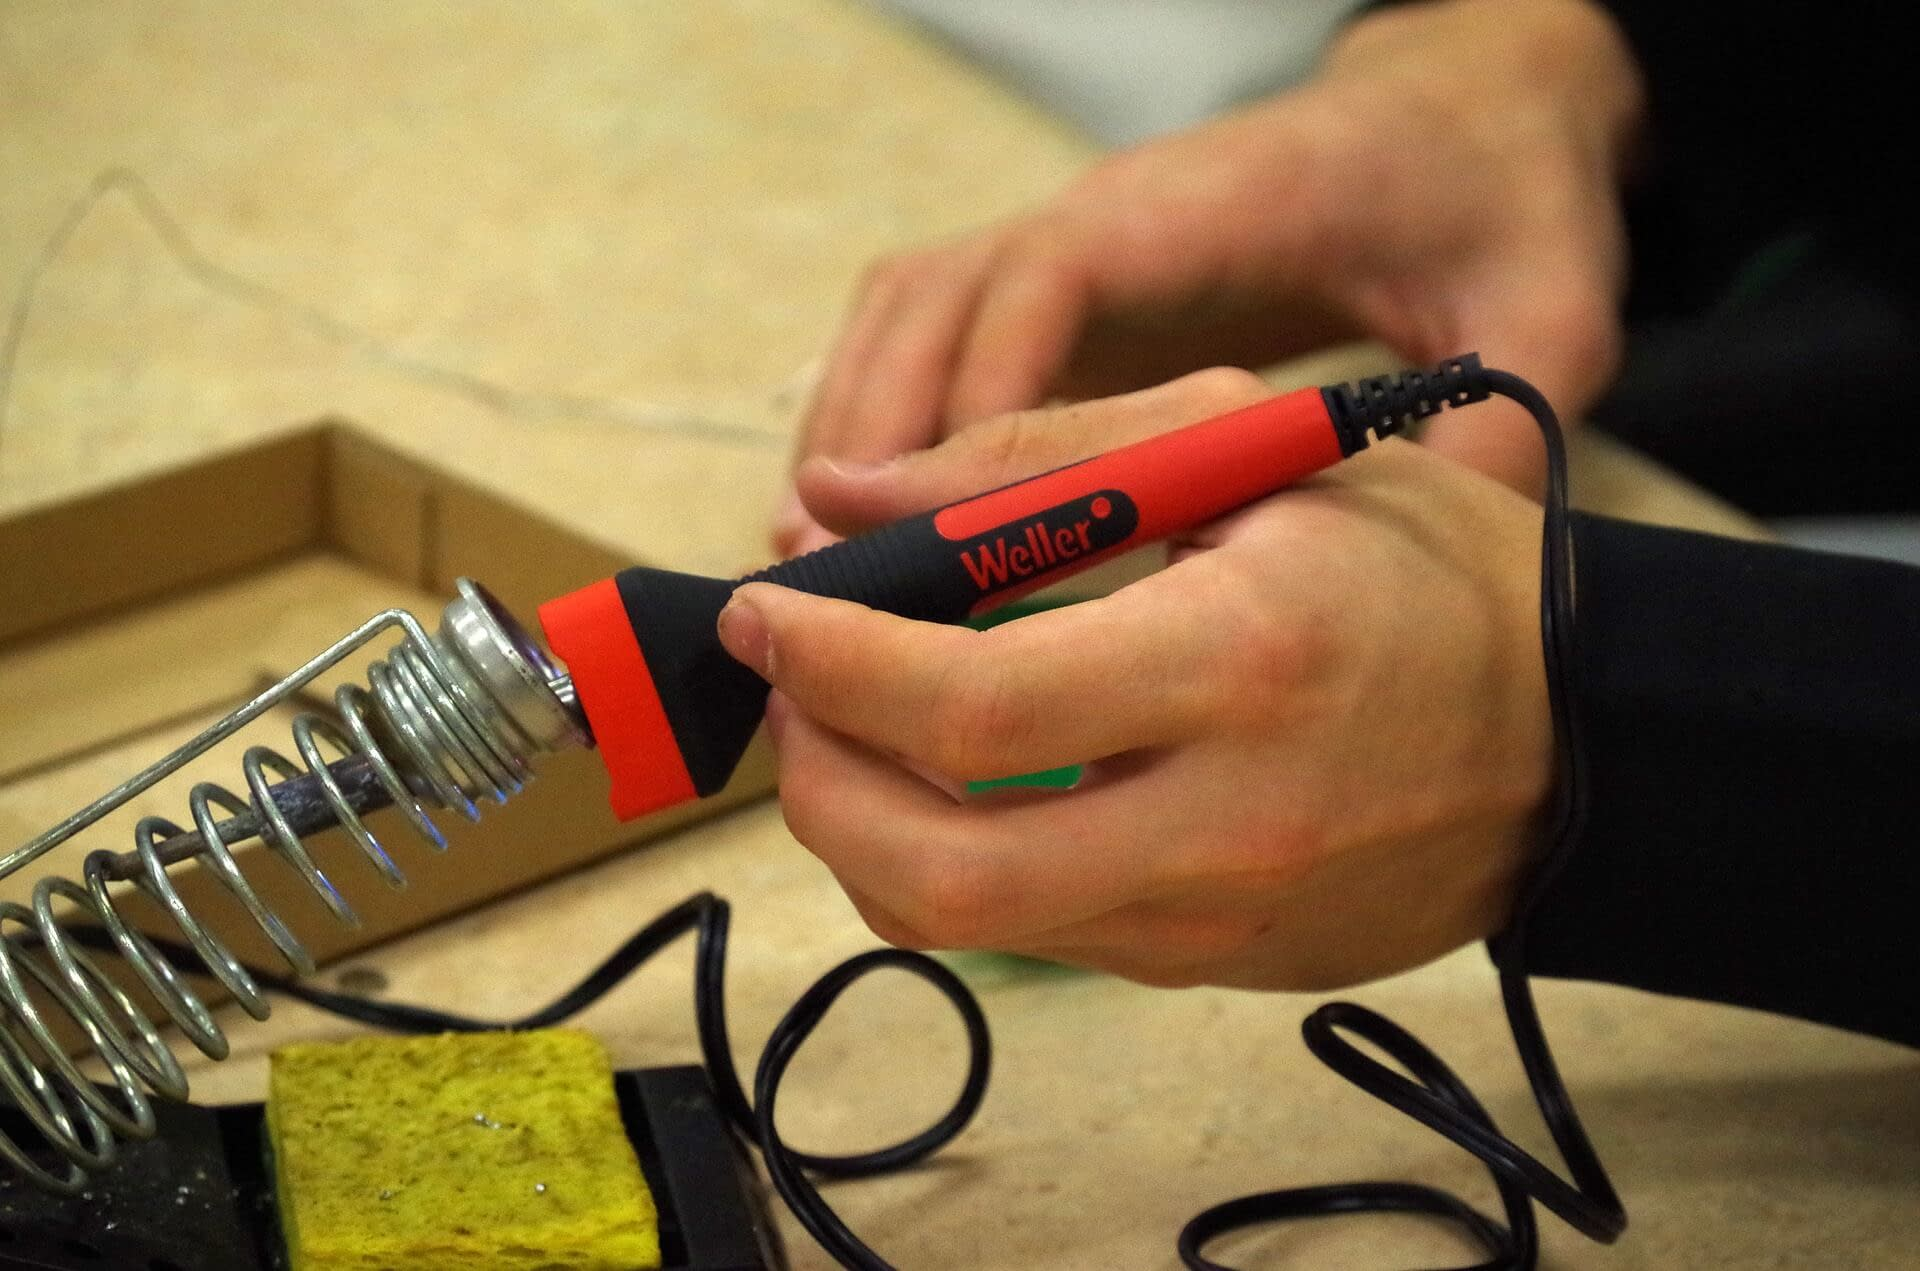 Technician using a soldering iron